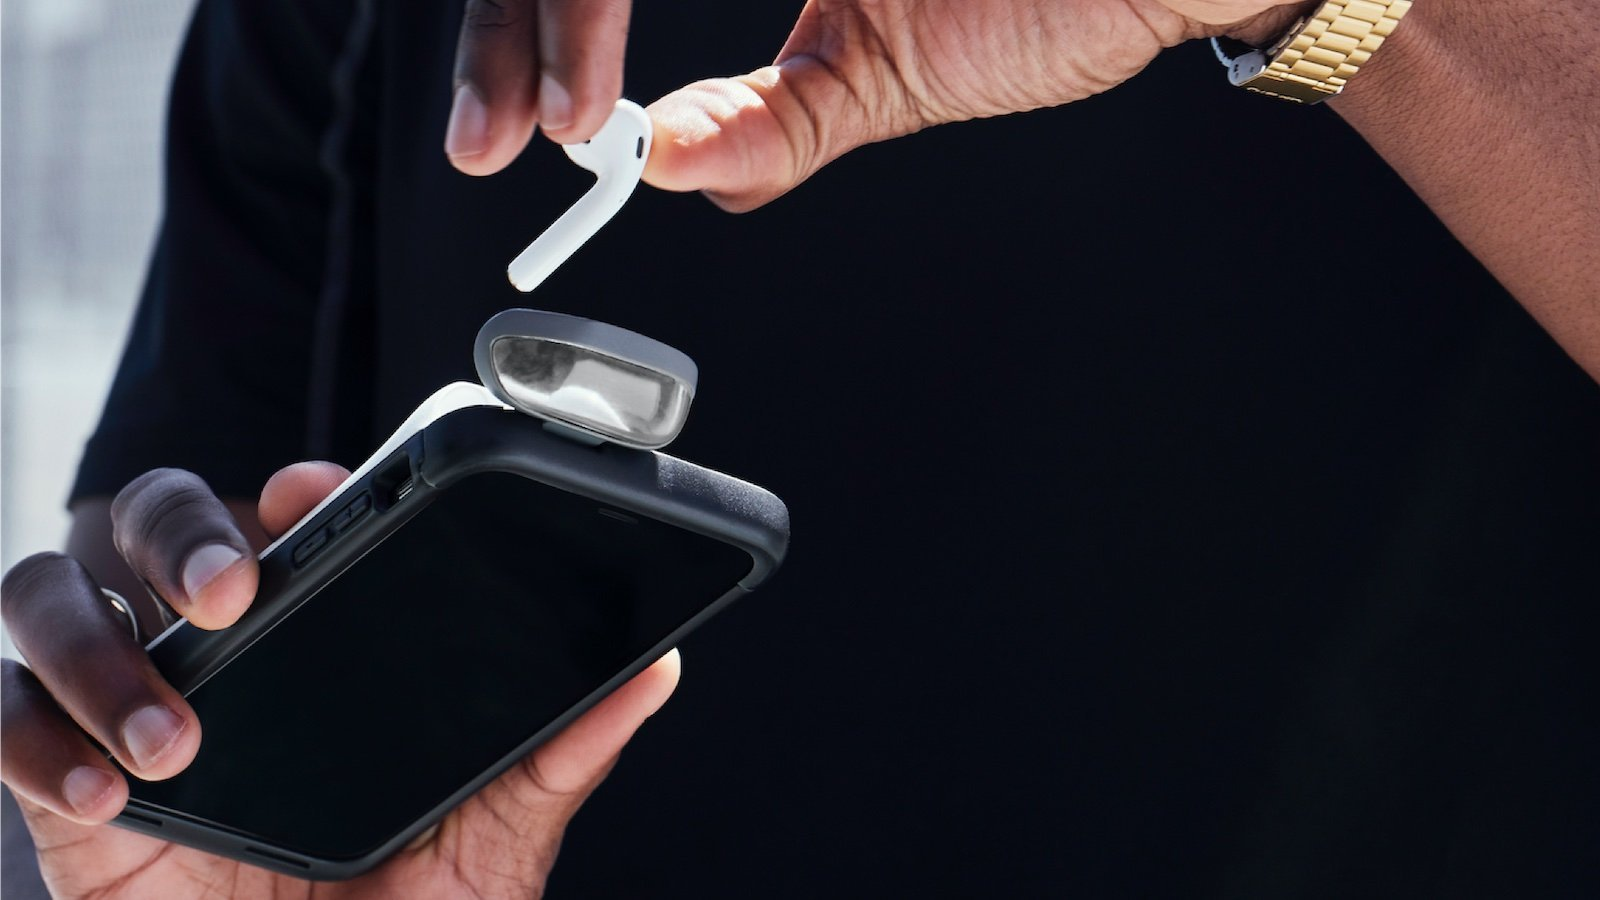 Best AirPods gadgets to buy